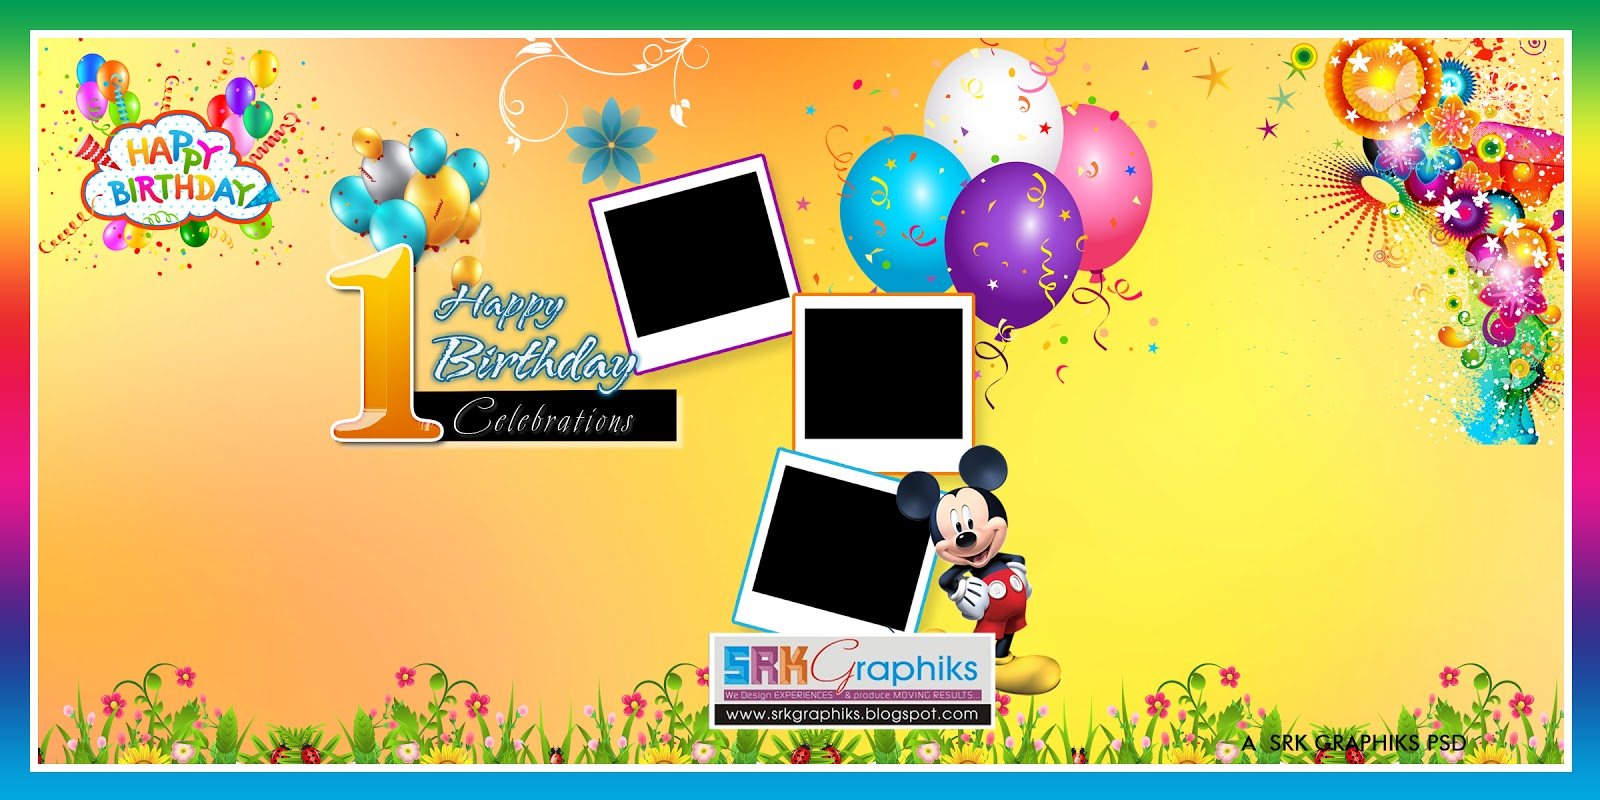 birthday banner design templates ; 8%252B%2525C3%252597%252B4